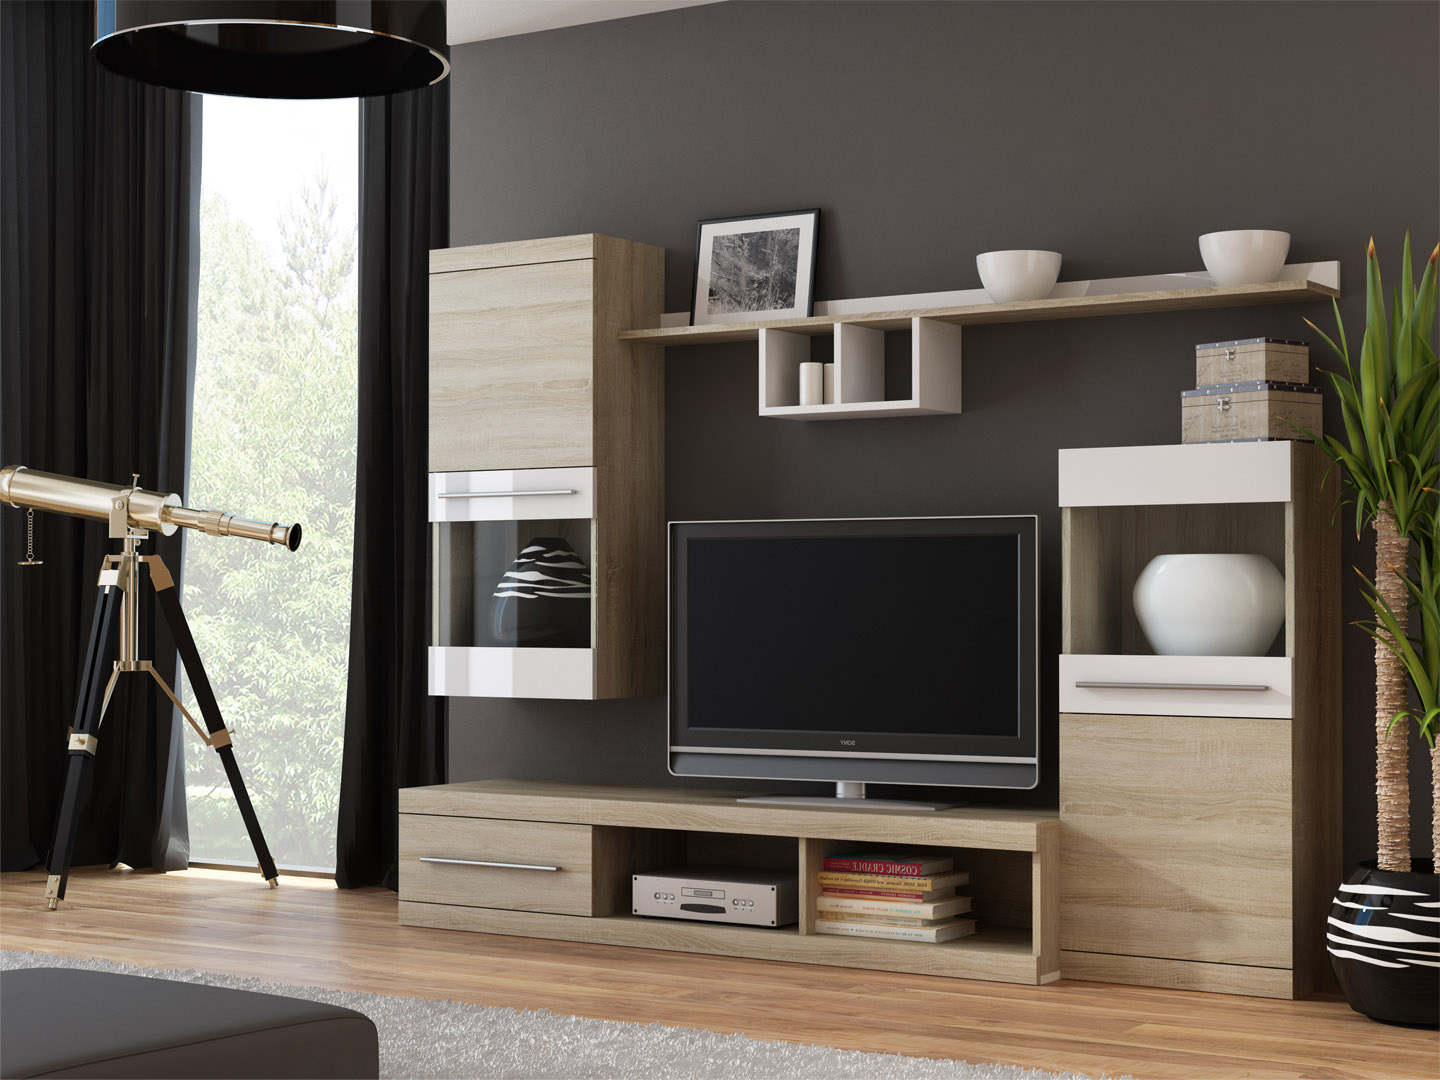 Merida 1 – Entertainment Center For 60 Inch Tv / Modern Tv Wall Unit Throughout Most Up To Date 60 Inch Tv Wall Units (View 14 of 20)